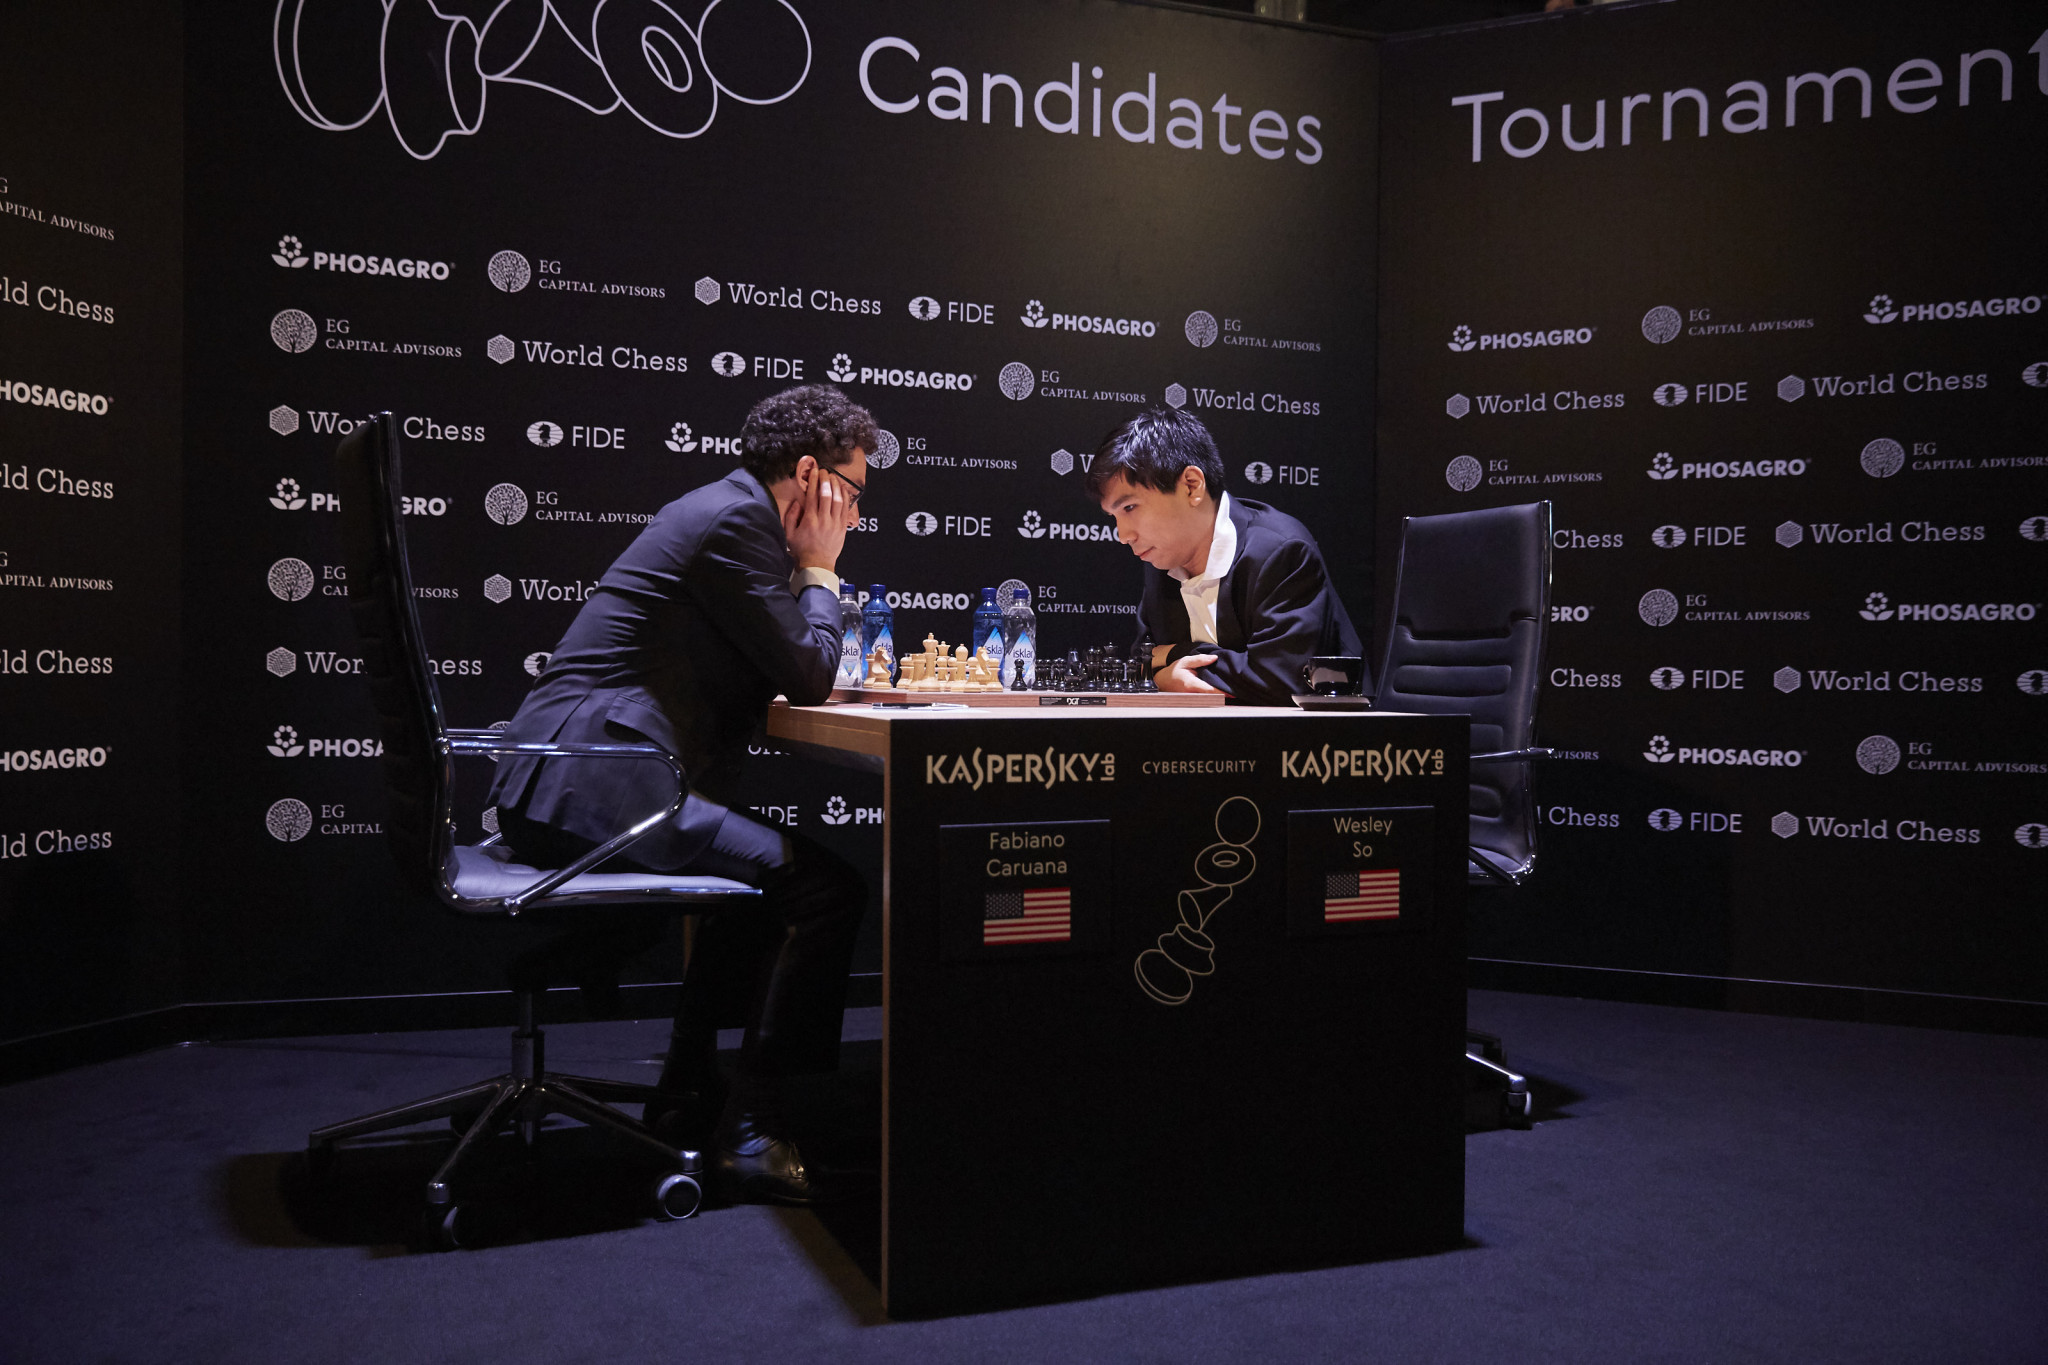 Caruana moves into top spot with win over Kramnik at FIDE Candidates Tournament 2018